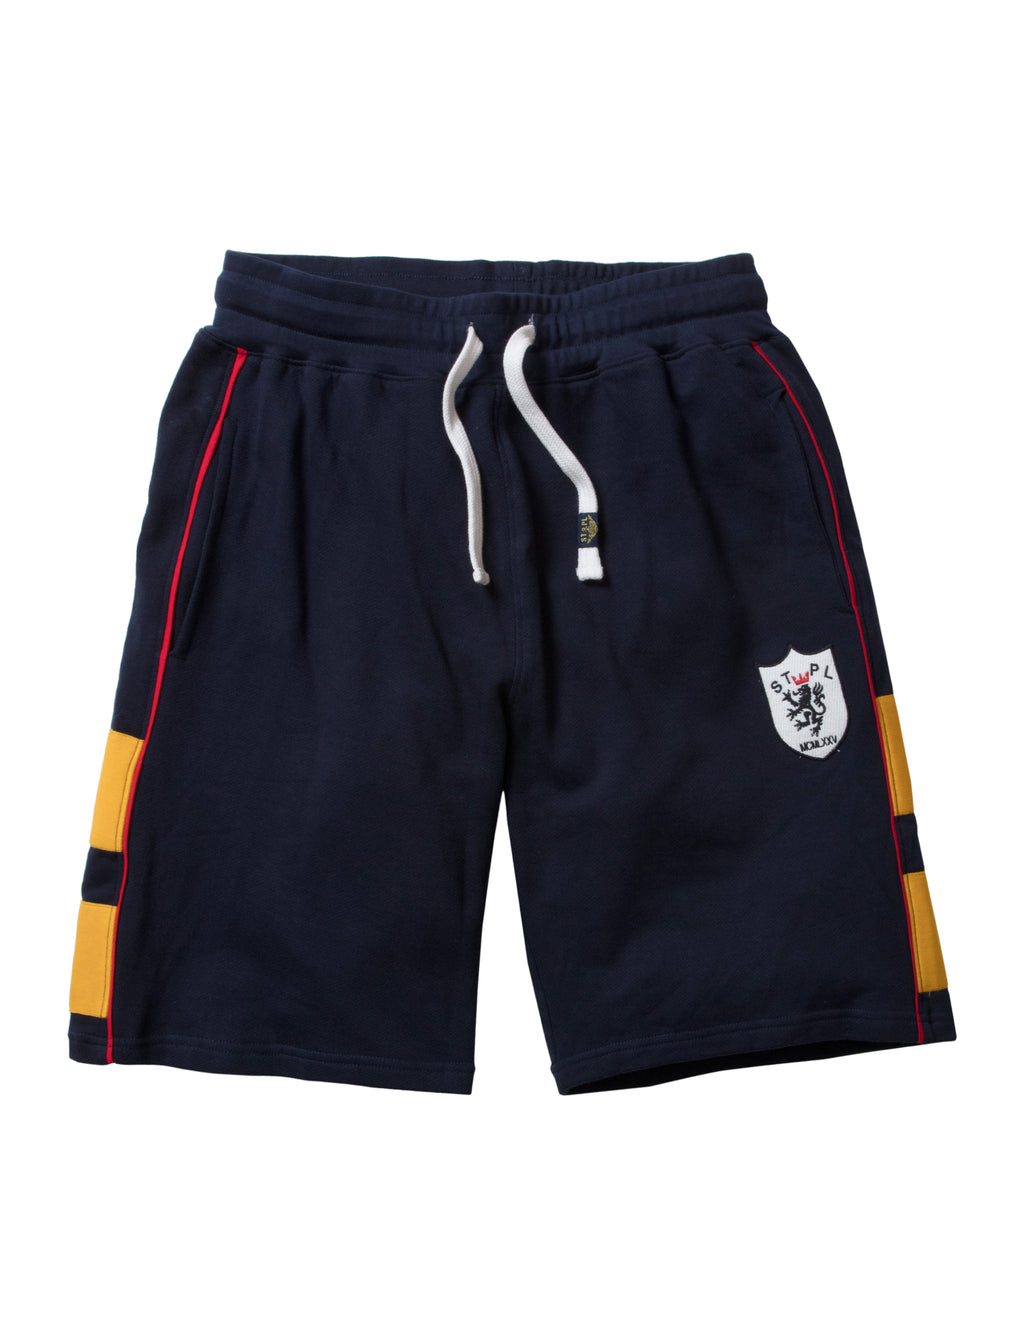 Multistripe Sweatshort - Shorts | Staple Pigeon